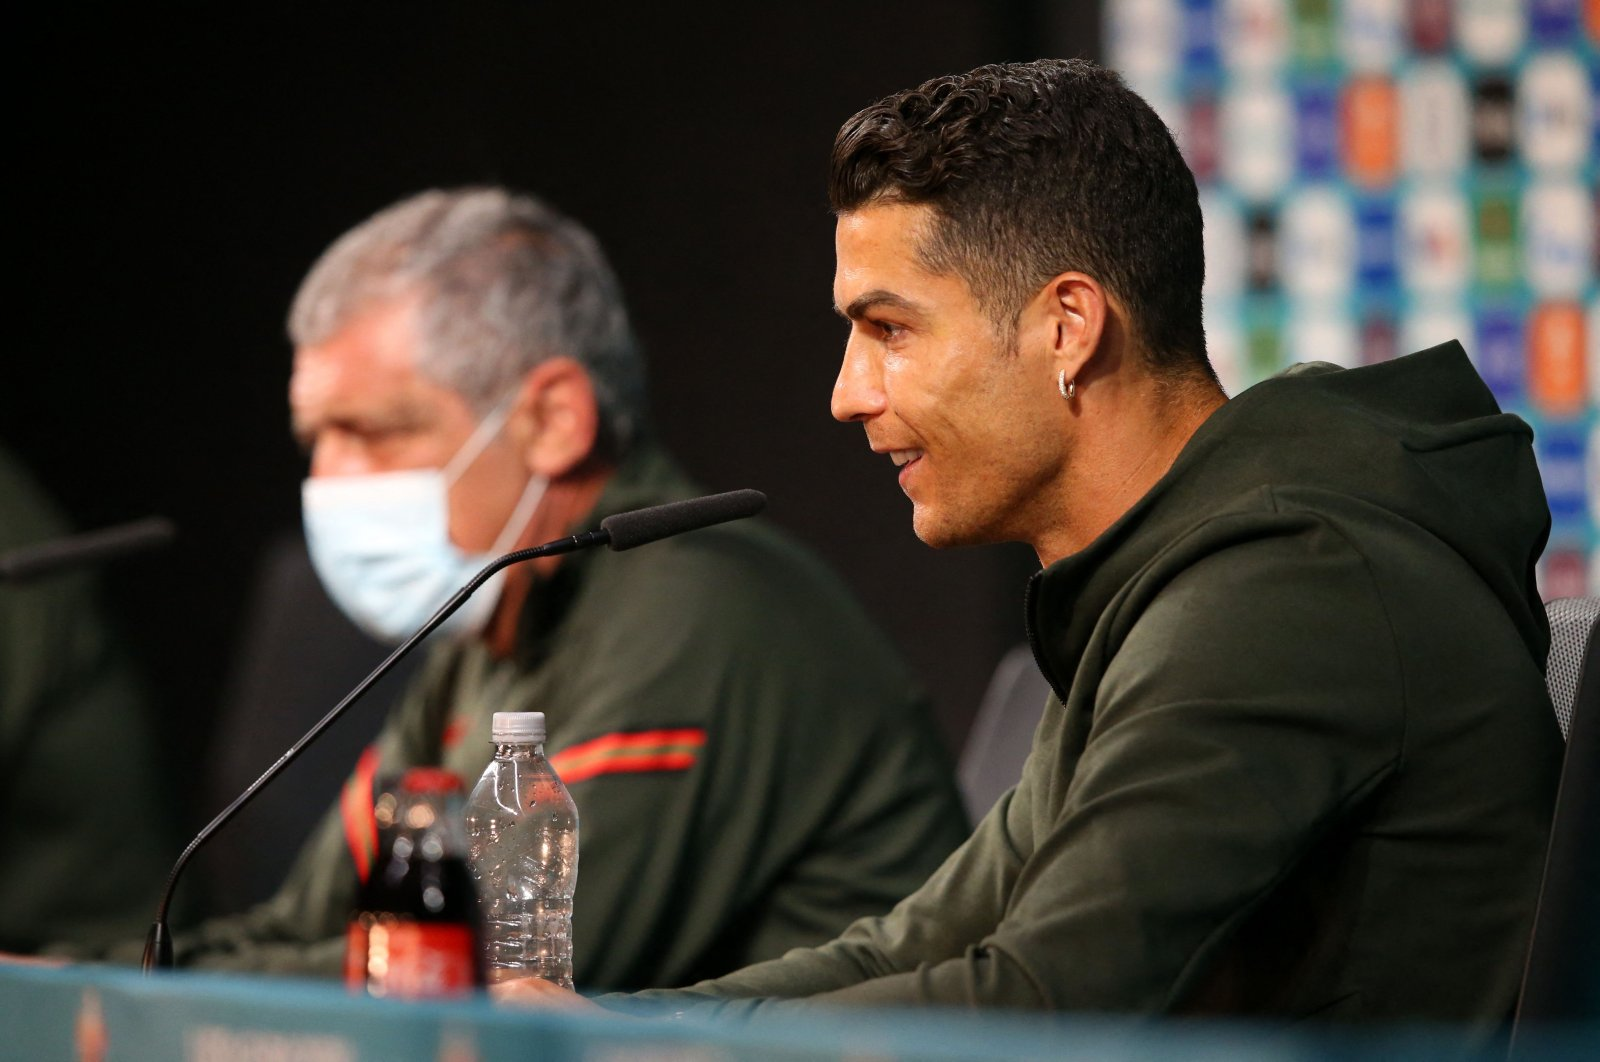 Portugal's forward Cristiano Ronaldo (R) and Portugal's coach Fernando Santos speak during a news conference at the Puskas Arena in Budapest, Hungary, June 14, 2021. (UEFA via AFP)